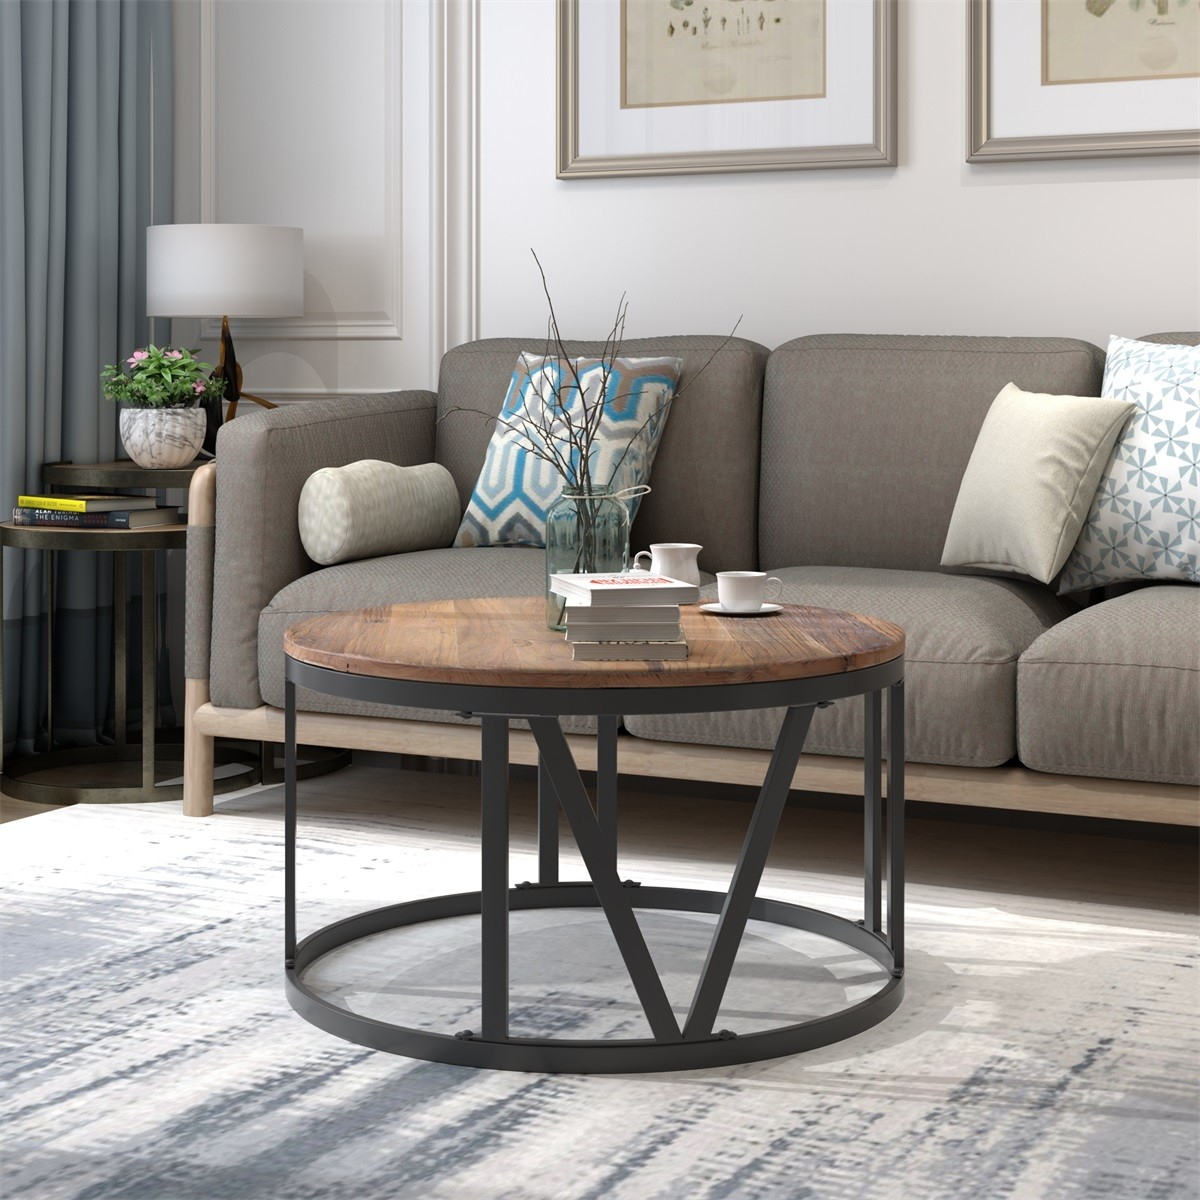 modernluxe rustic coffee table with roman numerically shaped iron legs walmart com